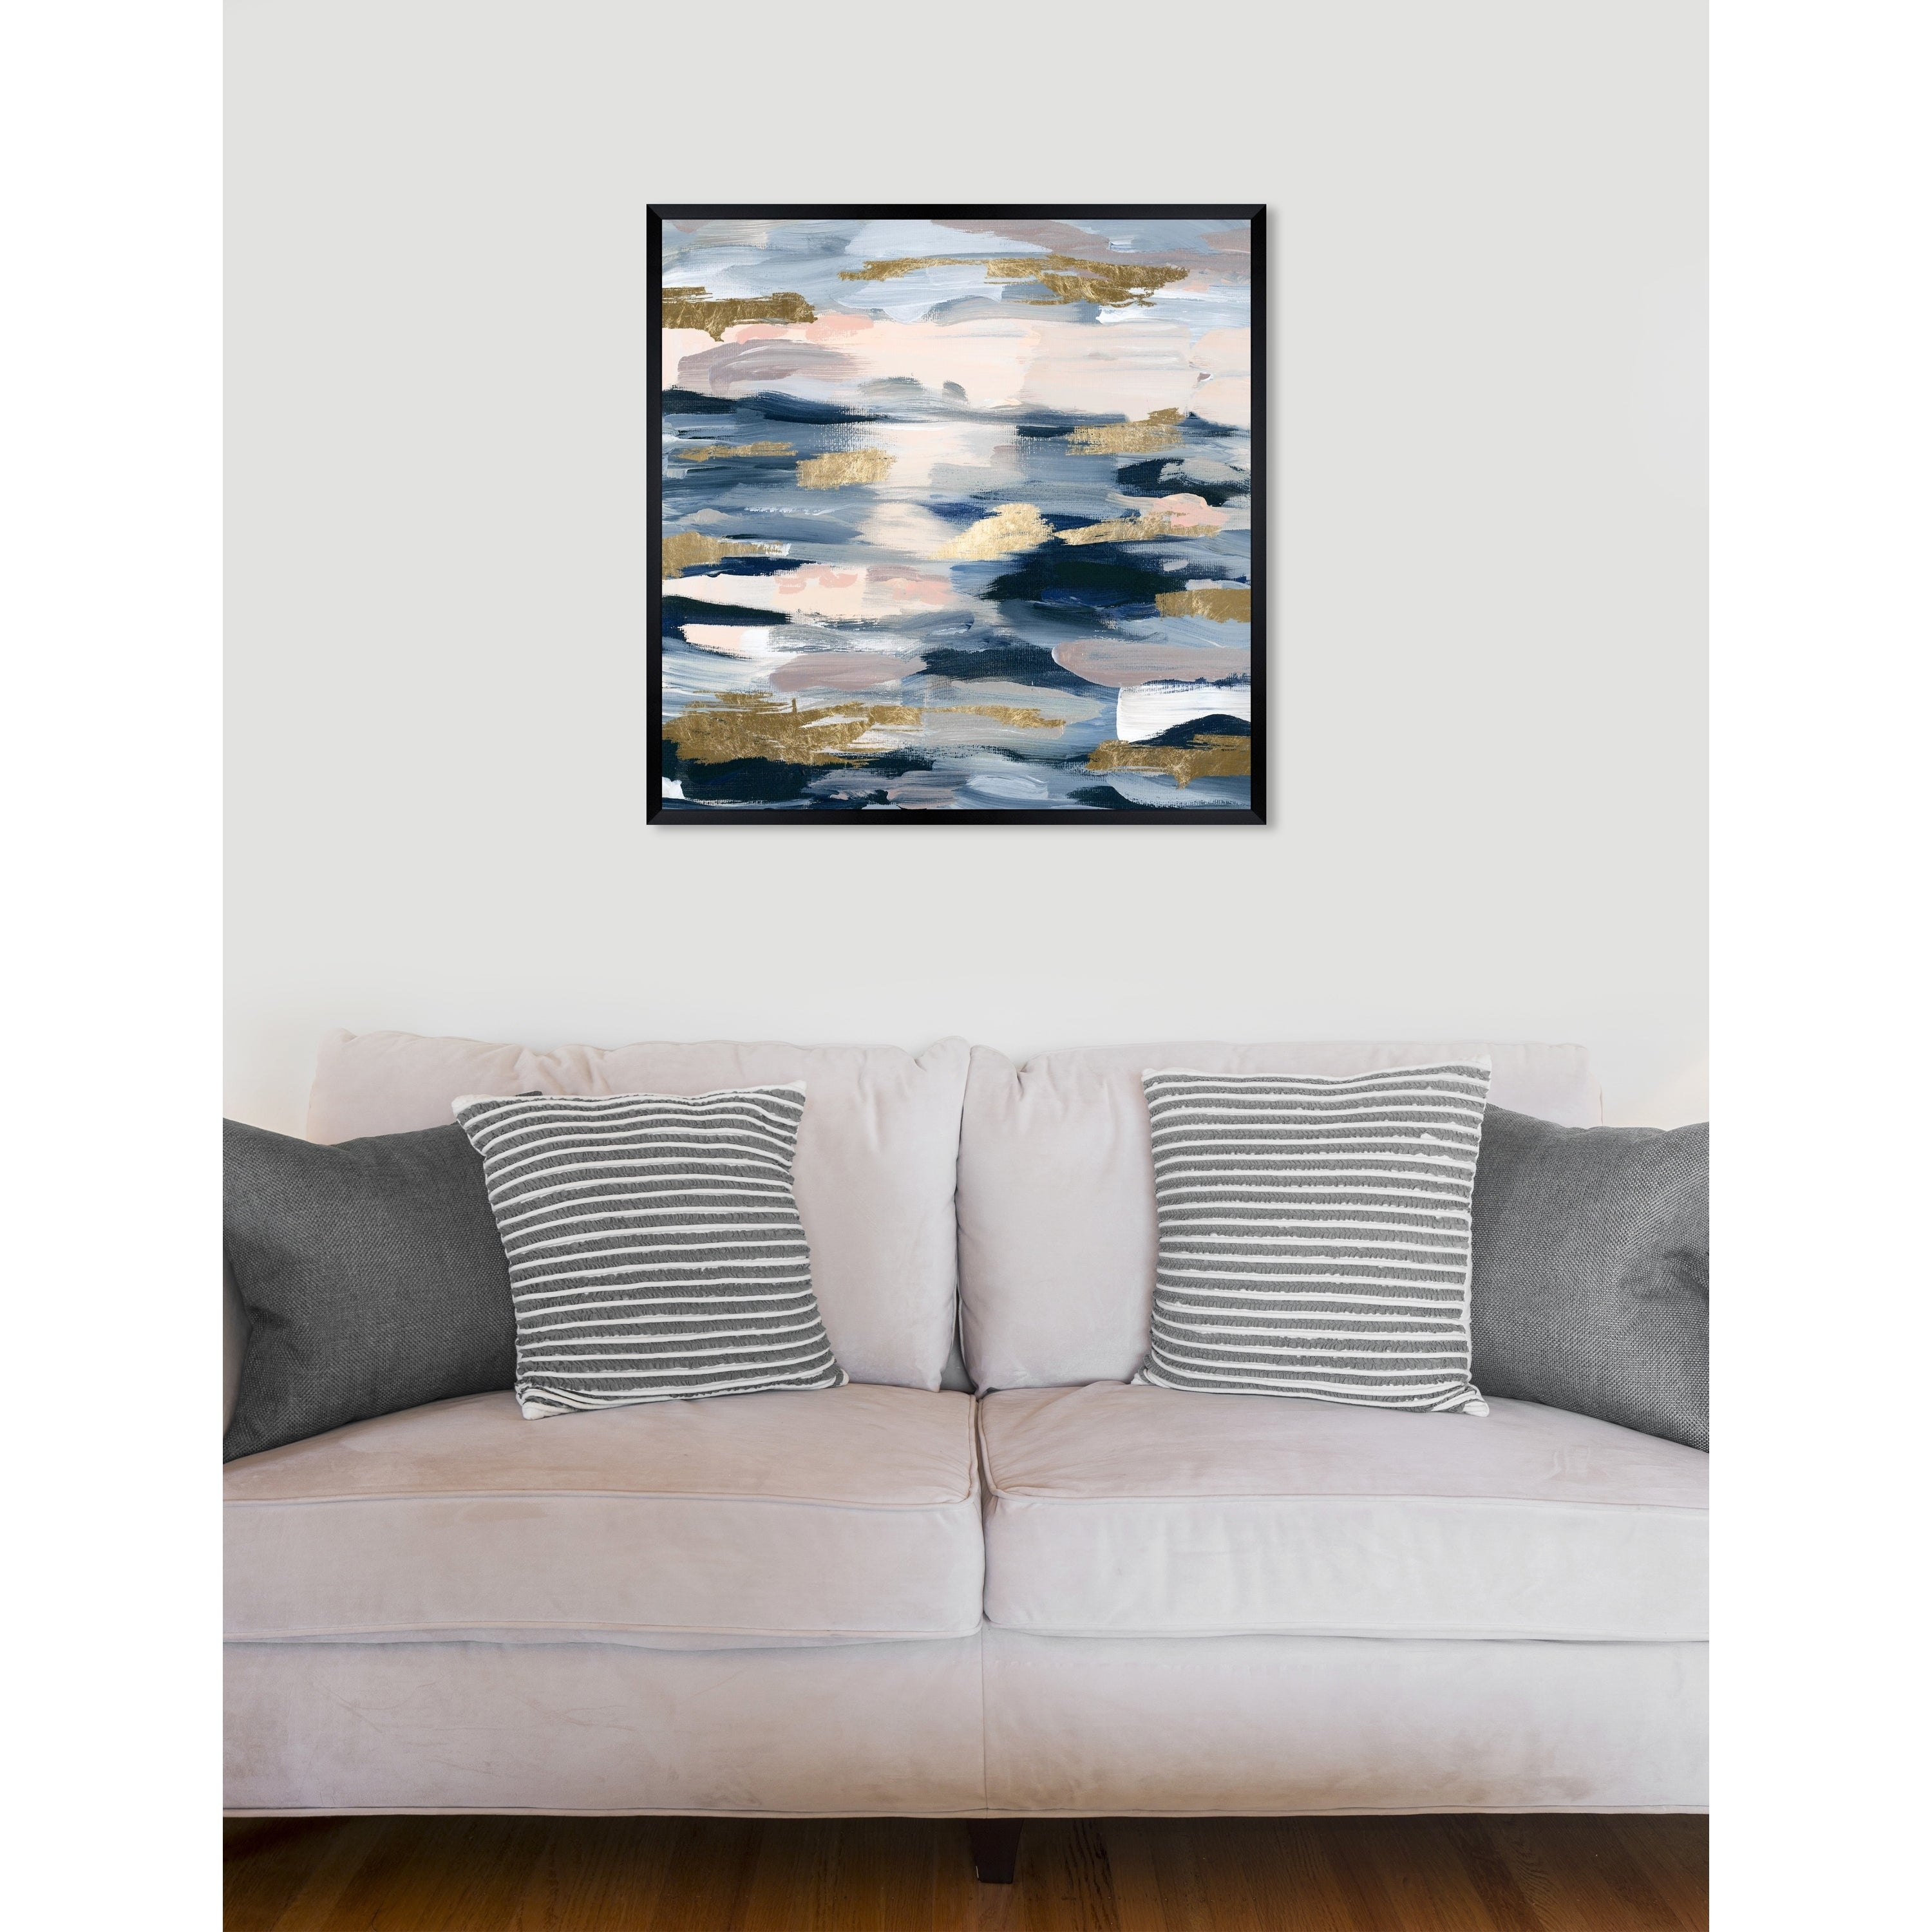 Oliver Gal Smoke On The Water Abstract Framed Wall Art Print Blue Gold